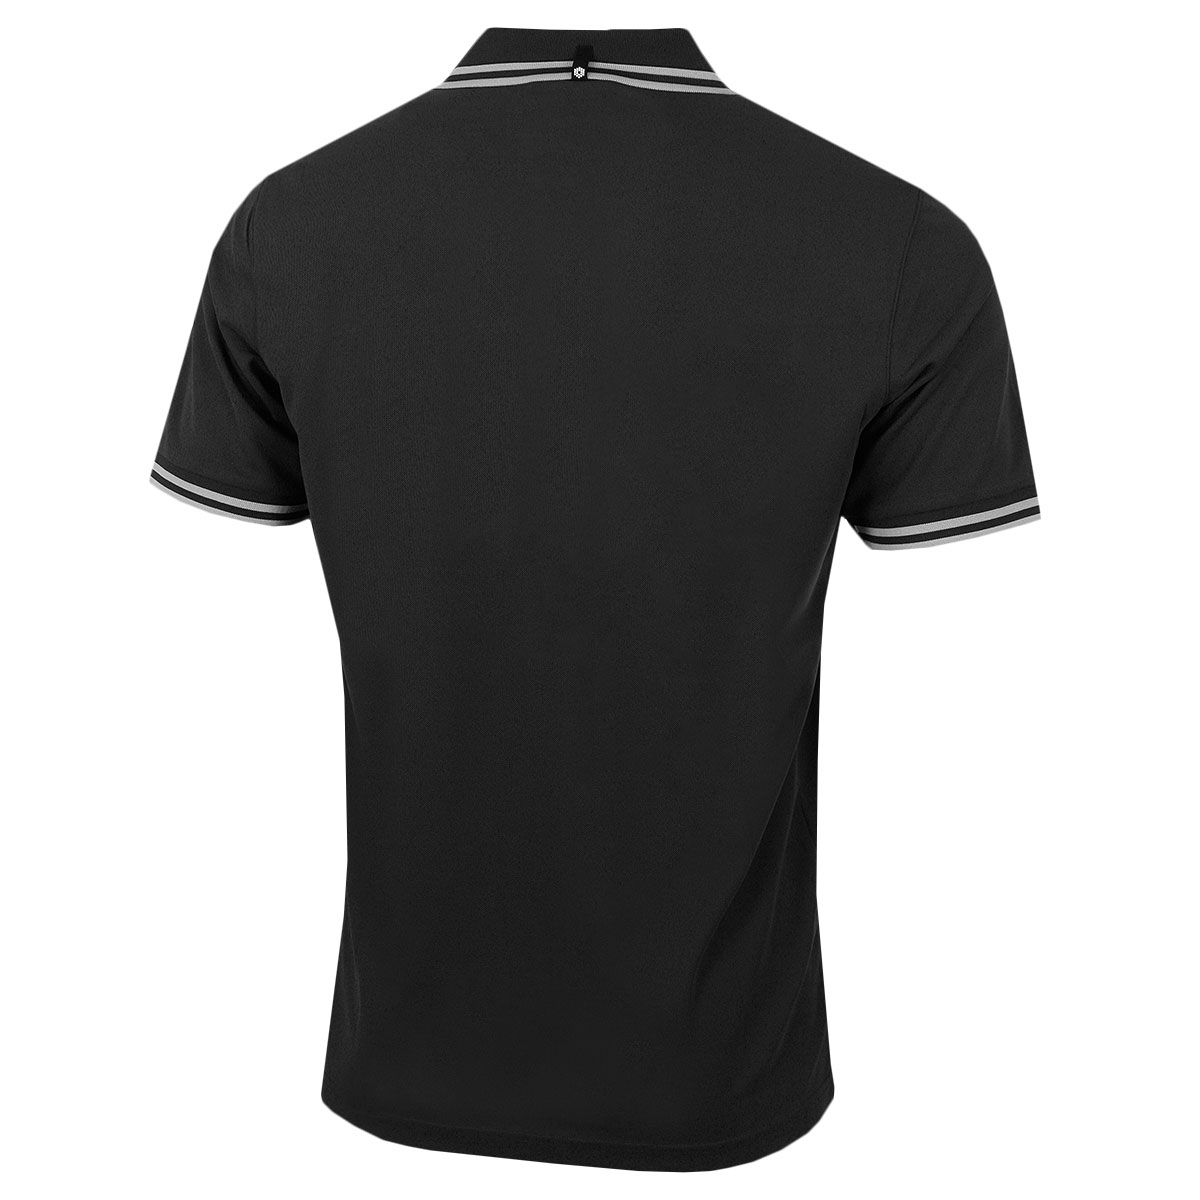 Puma-Golf-Mens-Pounce-Pique-dryCELL-Moisture-Wicking-Polo-Shirt-43-OFF-RRP thumbnail 3